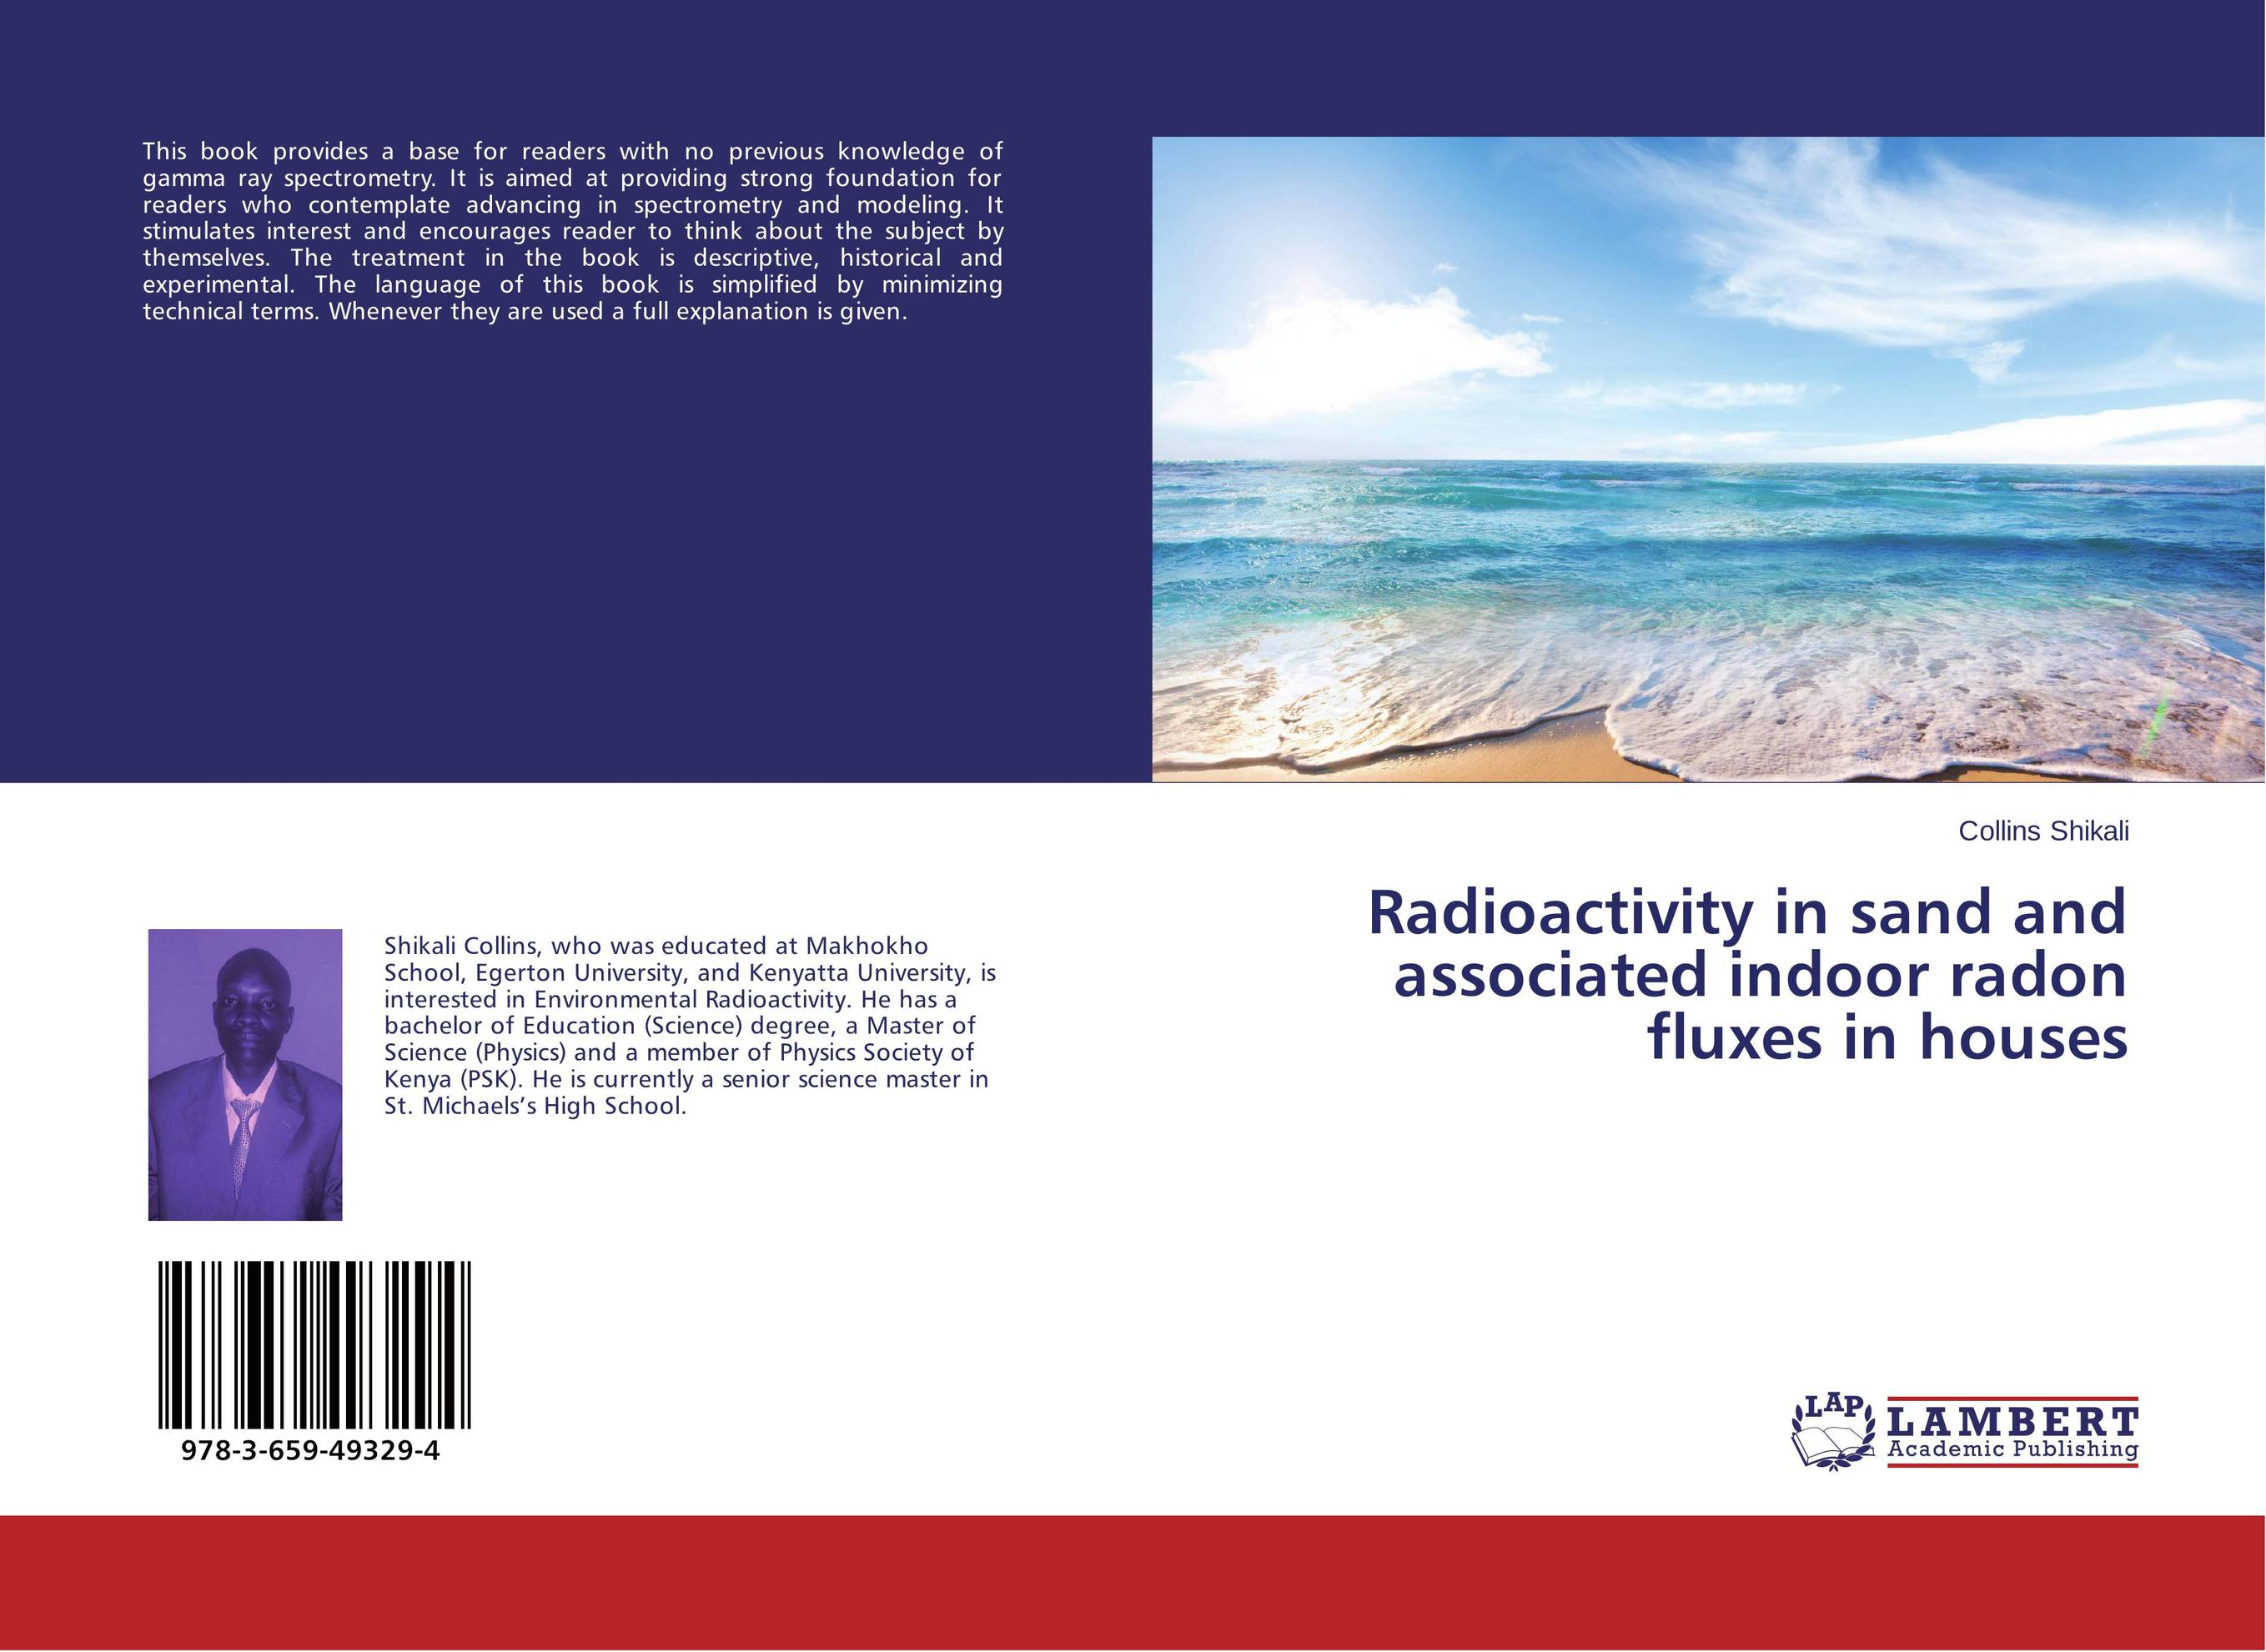 Radioactivity in sand and associated indoor radon fluxes in houses